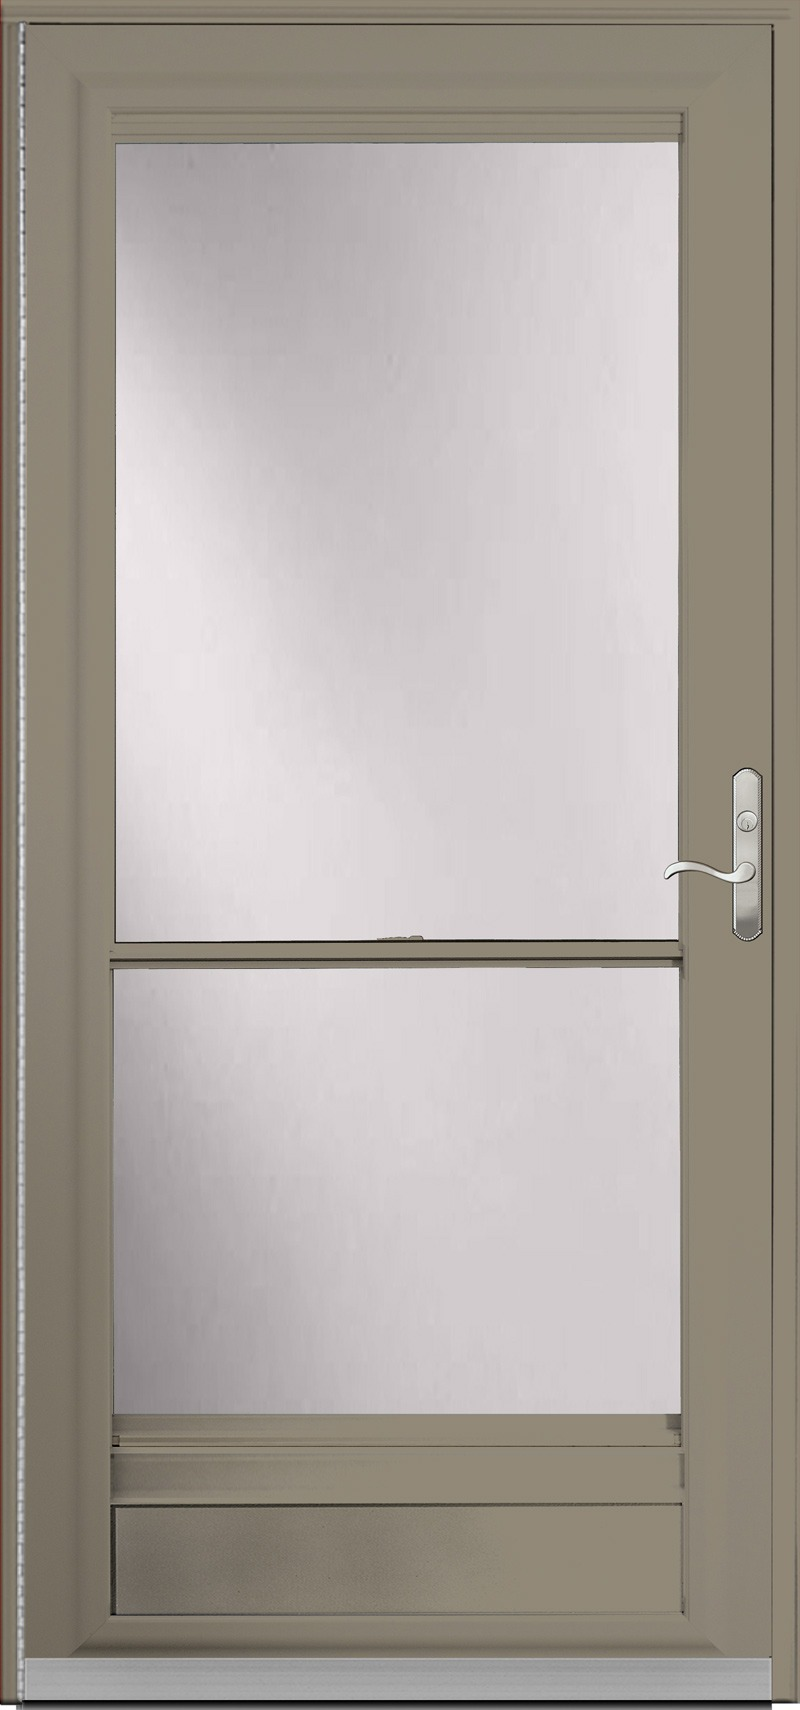 A dark tan door with glass inside